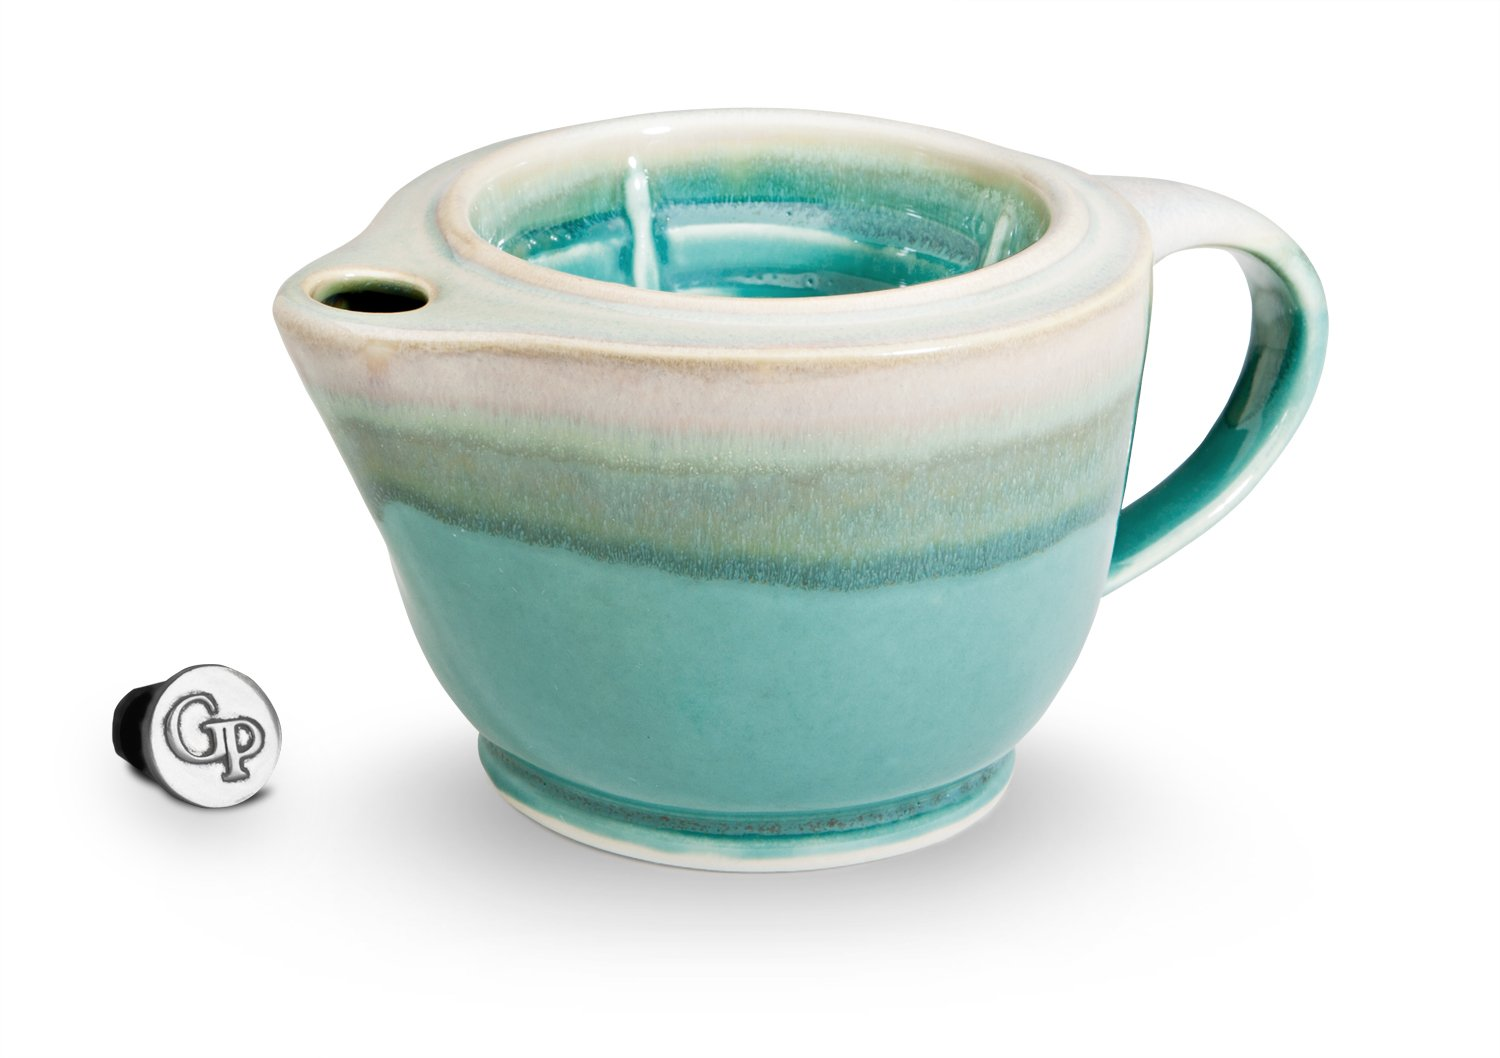 Georgetown Pottery G20 Shaving Scuttle Mug - Green Oribe by Georgetown Pottery